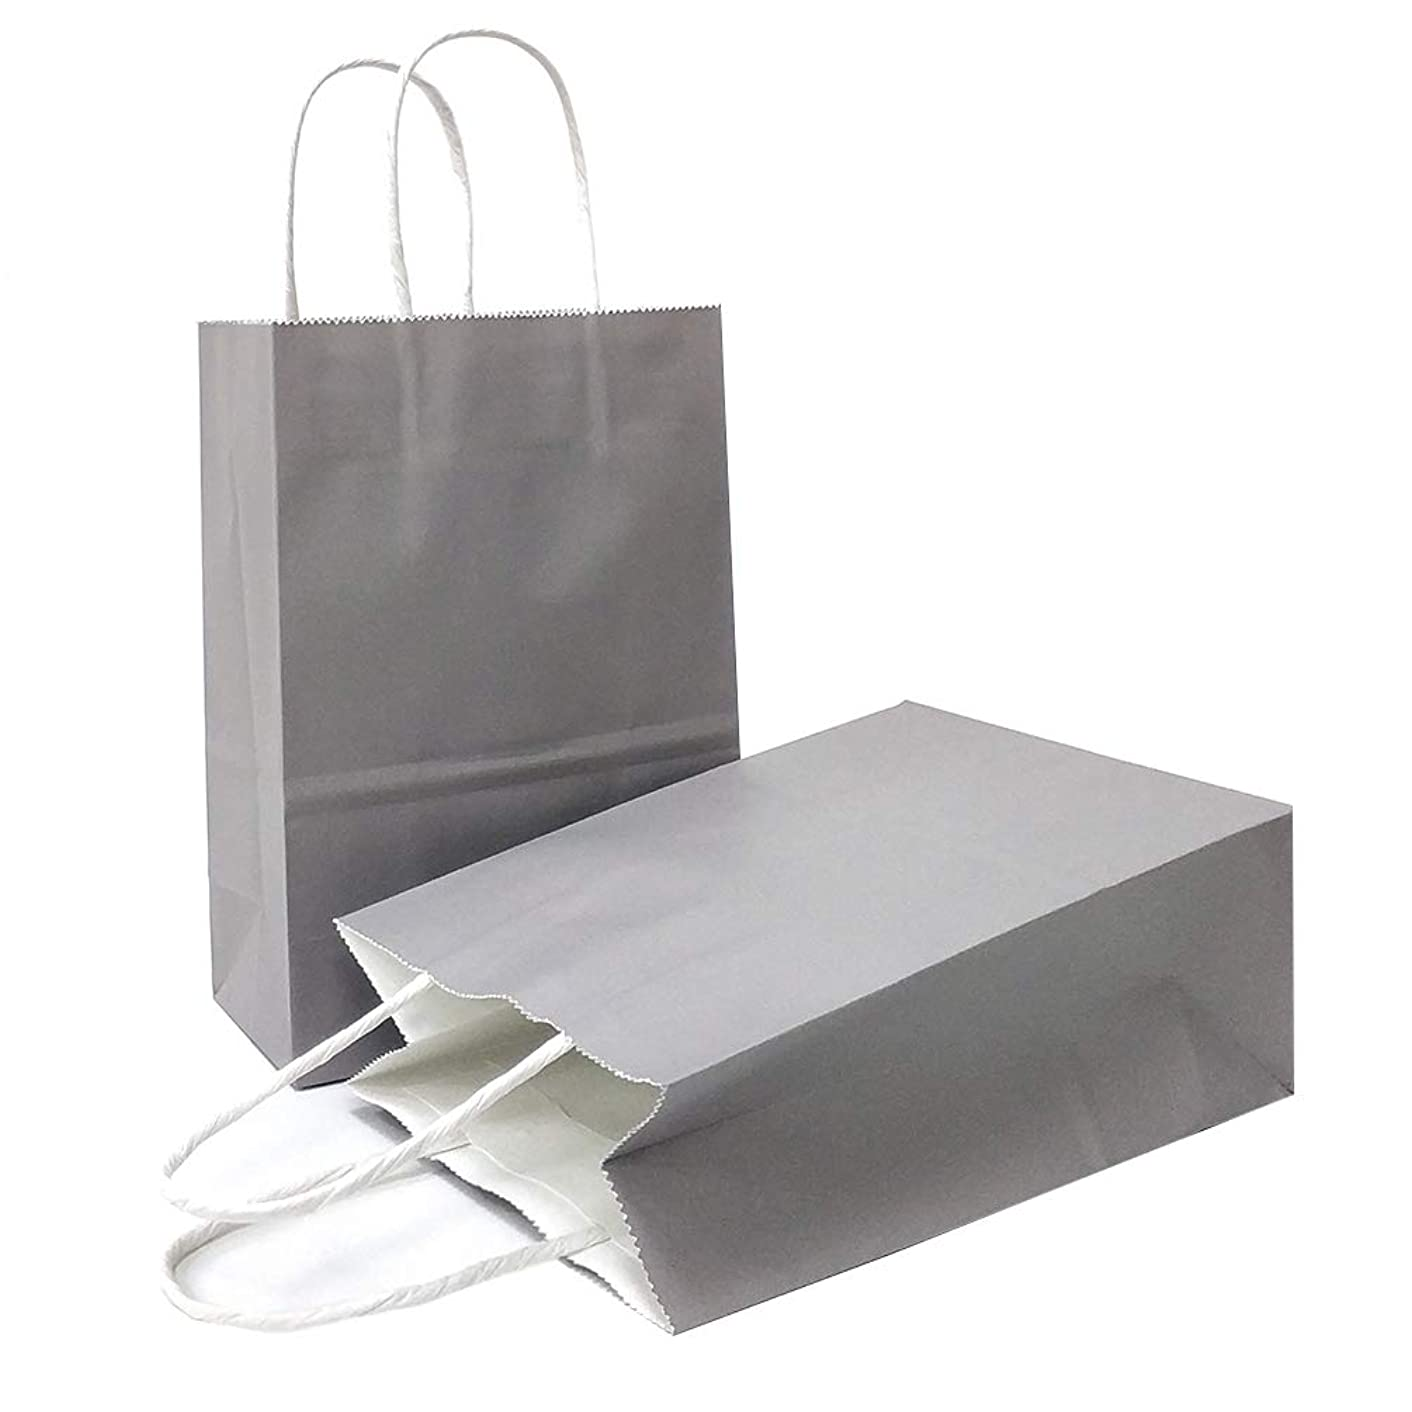 AZOWA Gift Bags Large Kraft Paper Bags with Handles (10.6 x 8.2 x 4.3 in, Grey, 25 Pcs)